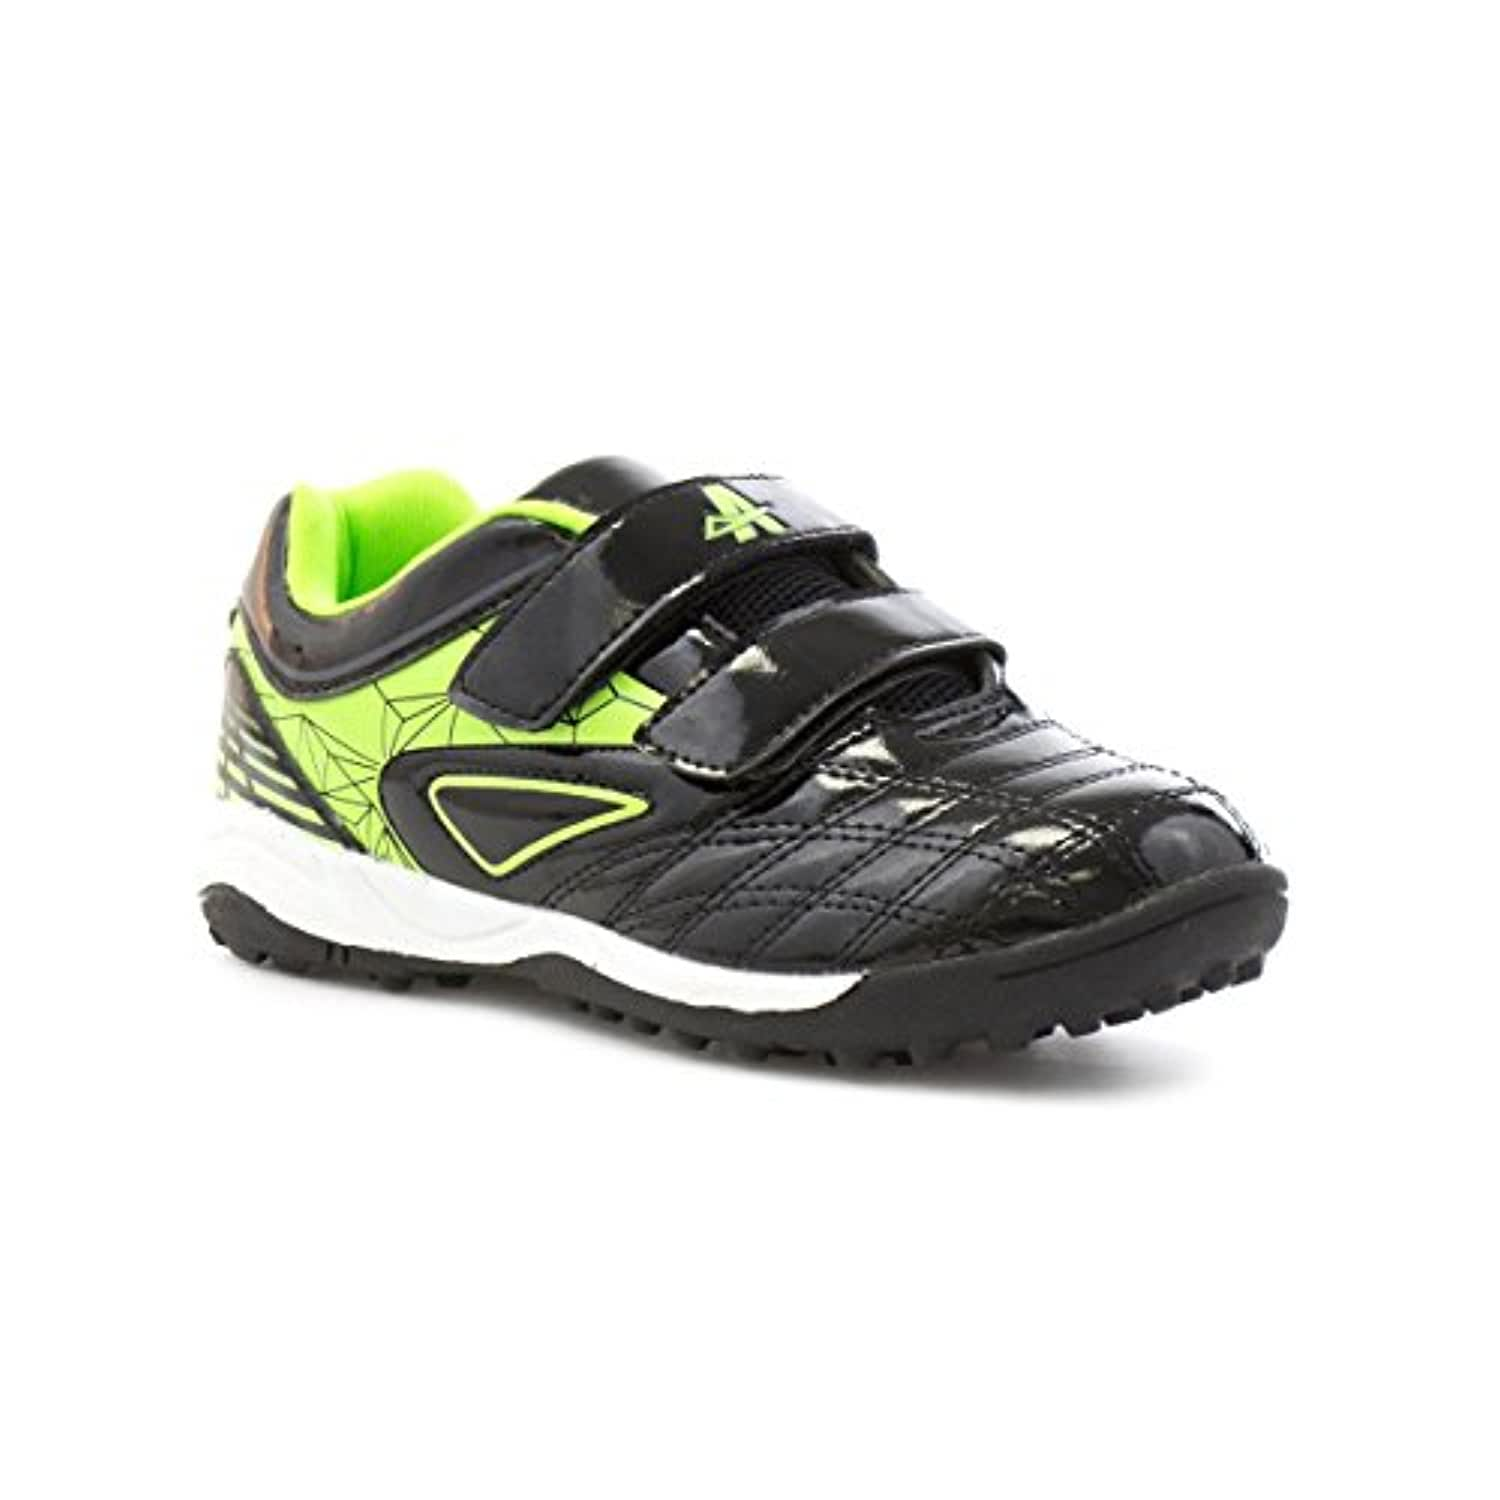 Ascot Boys Black and Lime Velcro Astroturf Trainer - Size 1 - Black